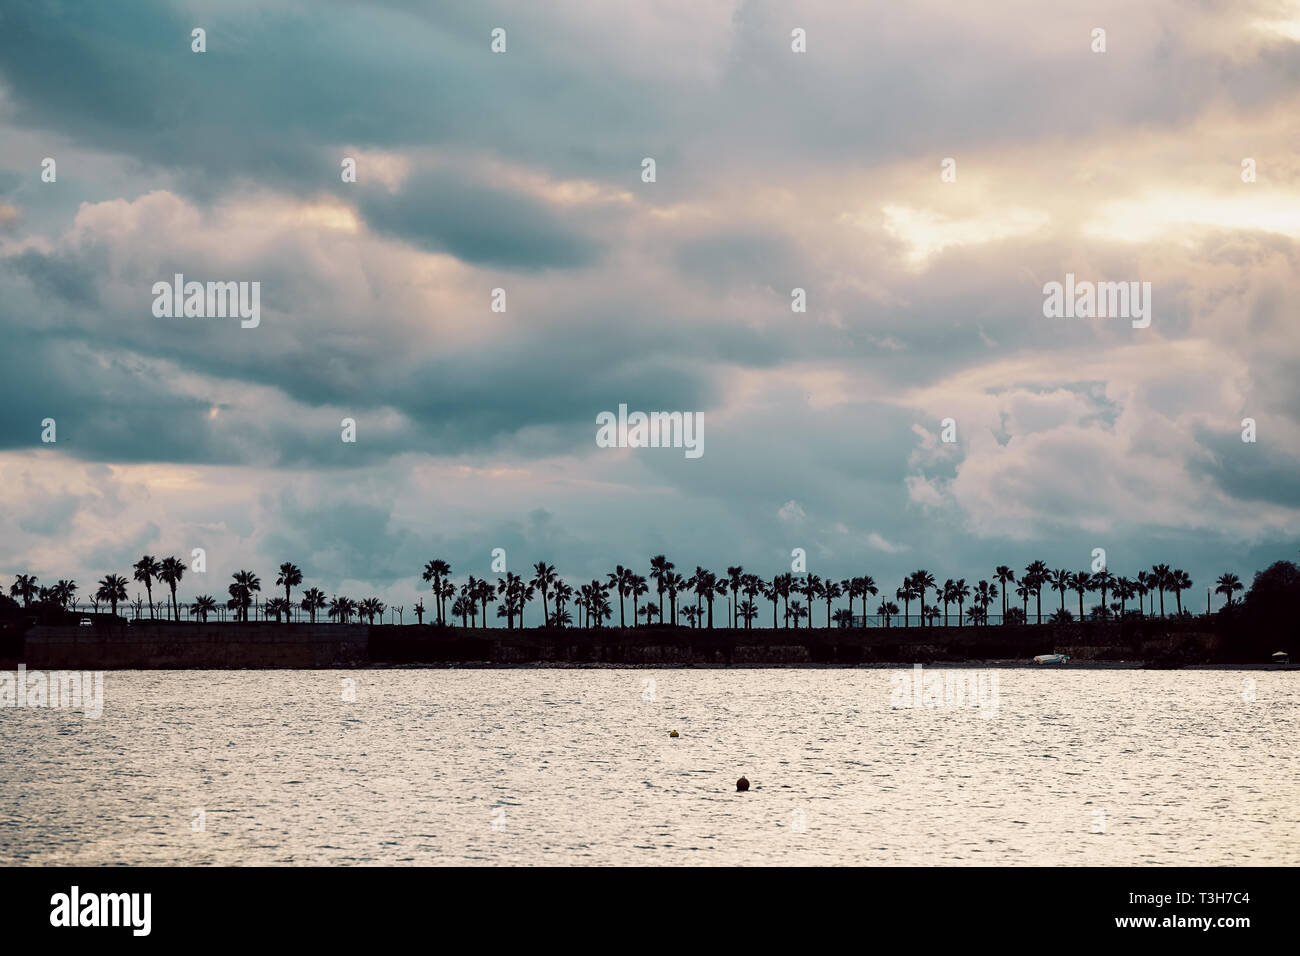 Dark silhouettes of palm trees, sea and amazing cloudy sky at sunset. Distant view. Minimalist landscape wallpaper, background. - Stock Image